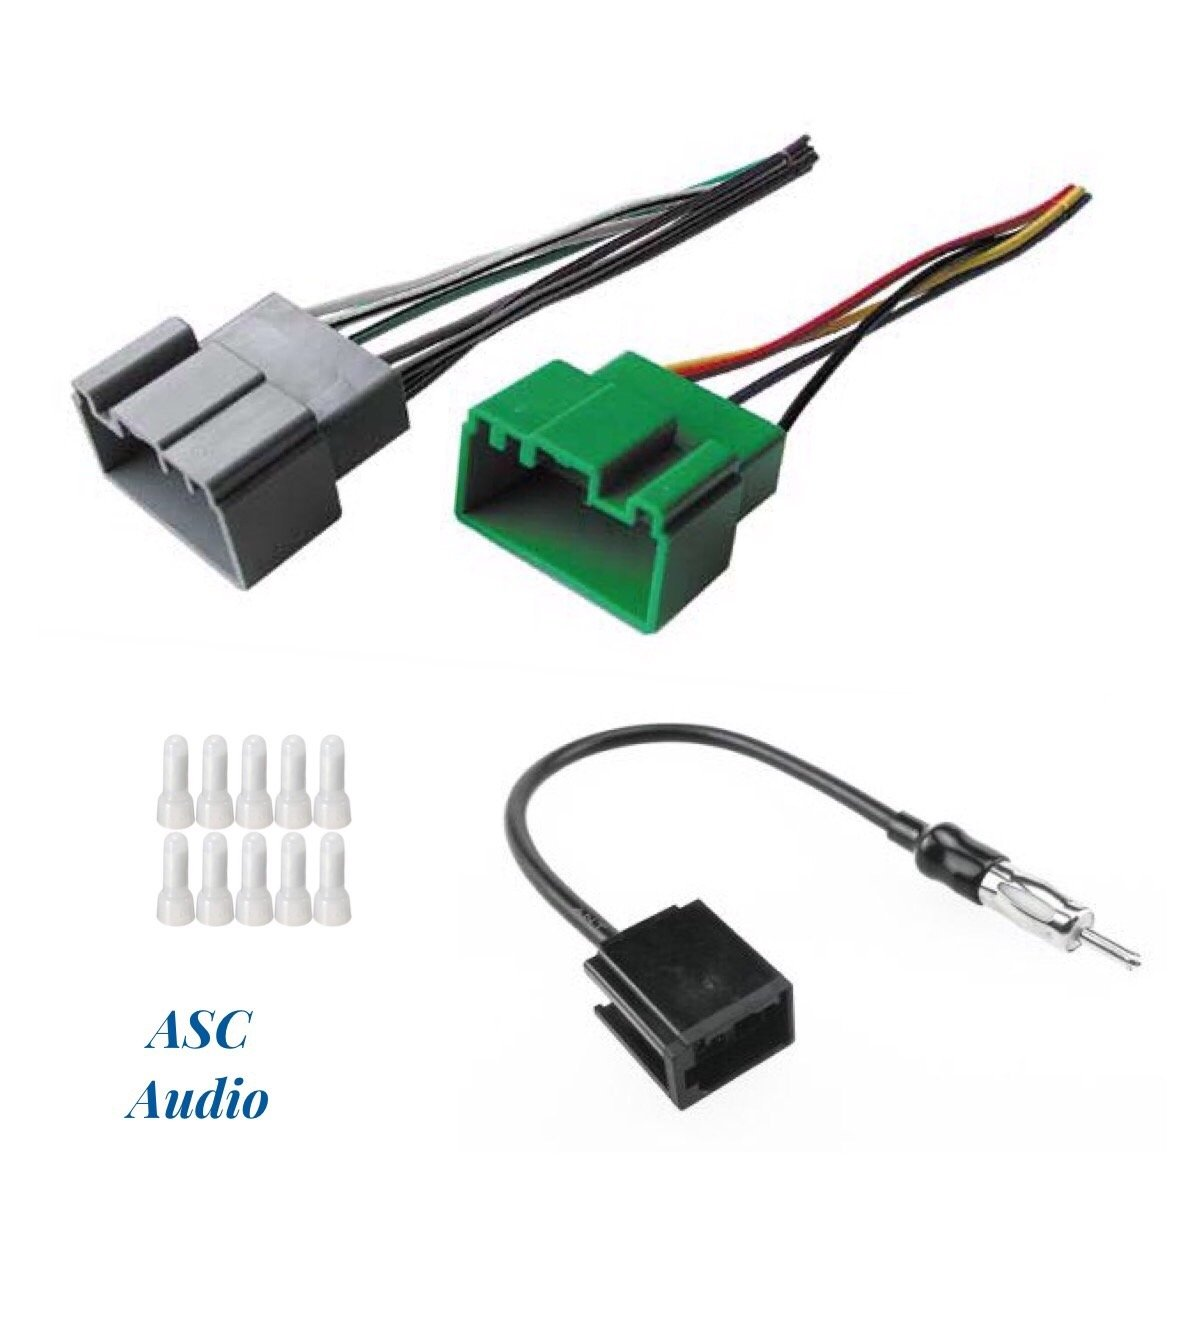 Buy Asc Audio Car Stereo Radio Wire Harness And Antenna Adapter To Wiring Install An Aftermarket For